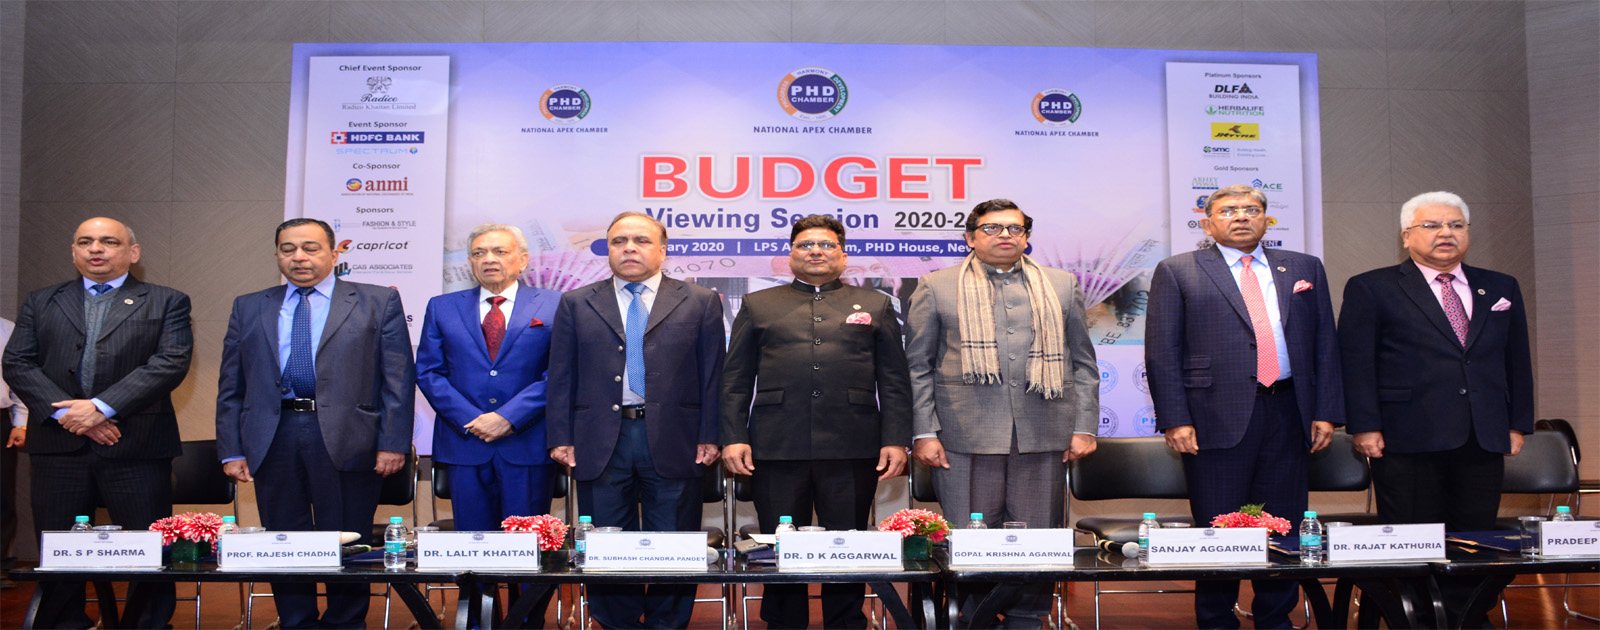 Budget Viewing Session 2020-21